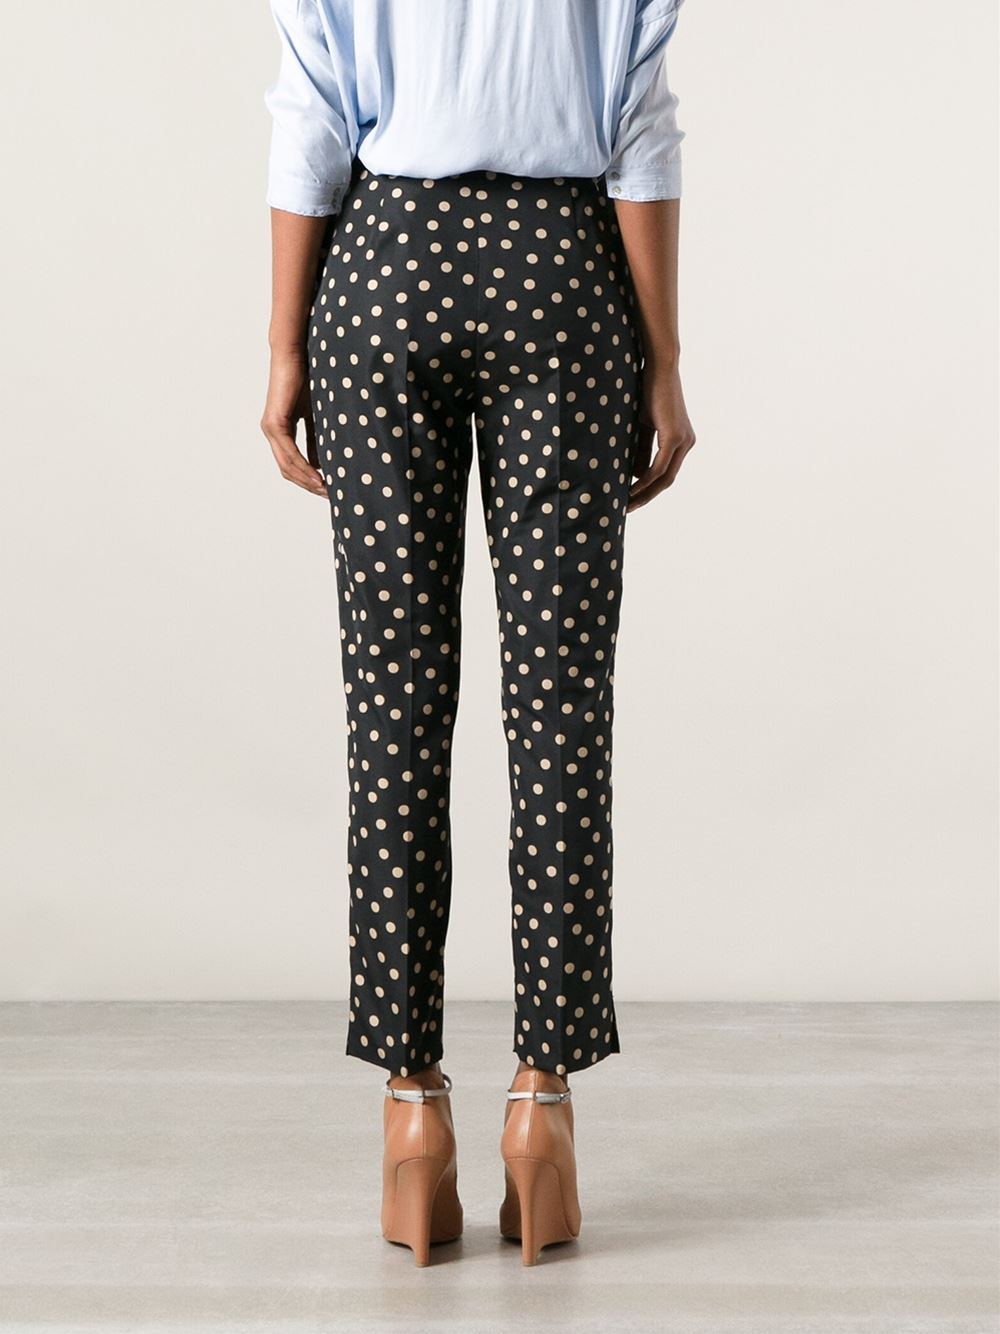 Paule Ka Polka Dot Trousers - Babylon Bus Women - Farfetch.com